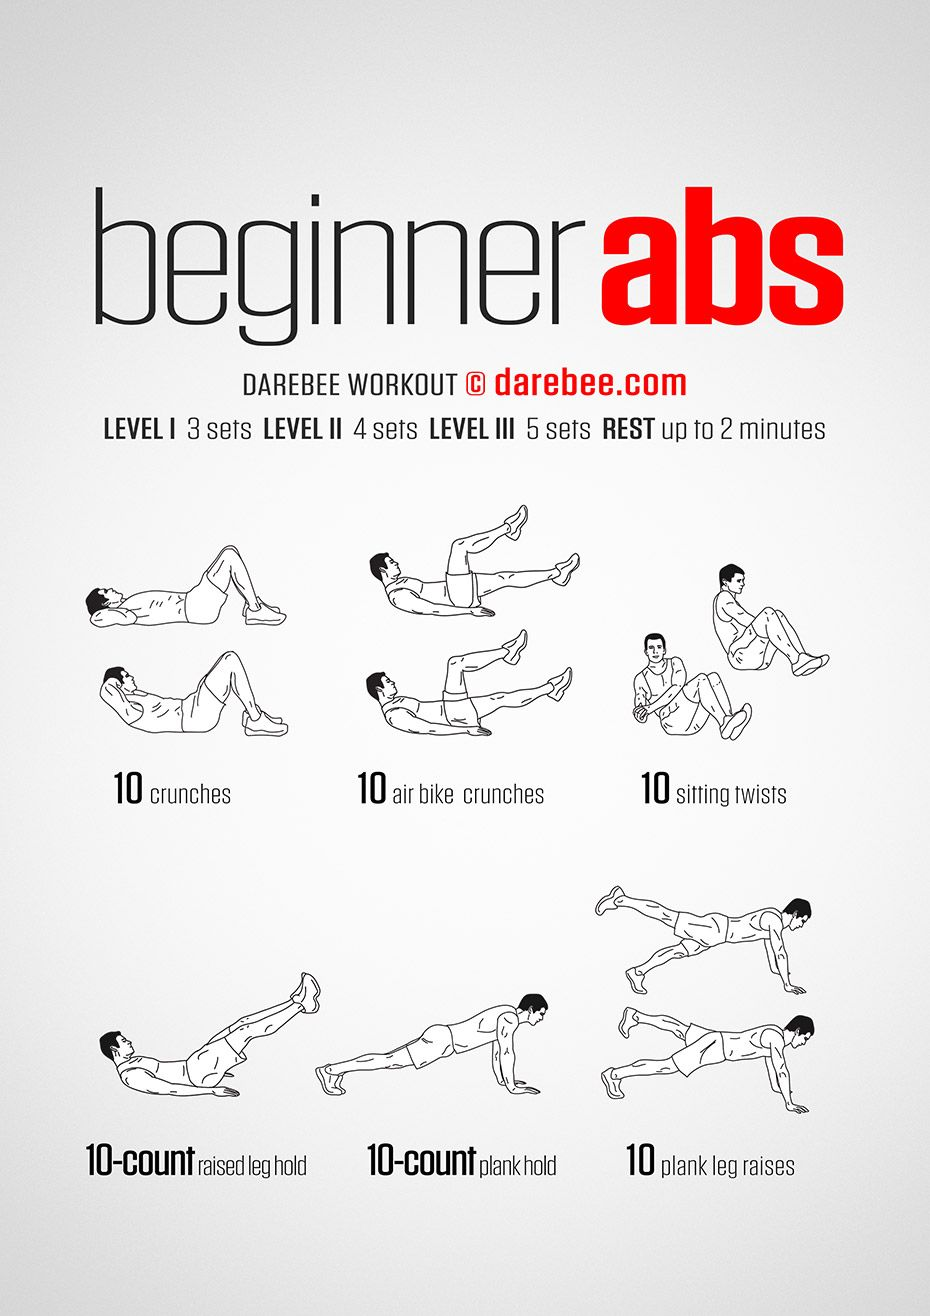 Beginner Abs Workout Floor Work Out Pinterest